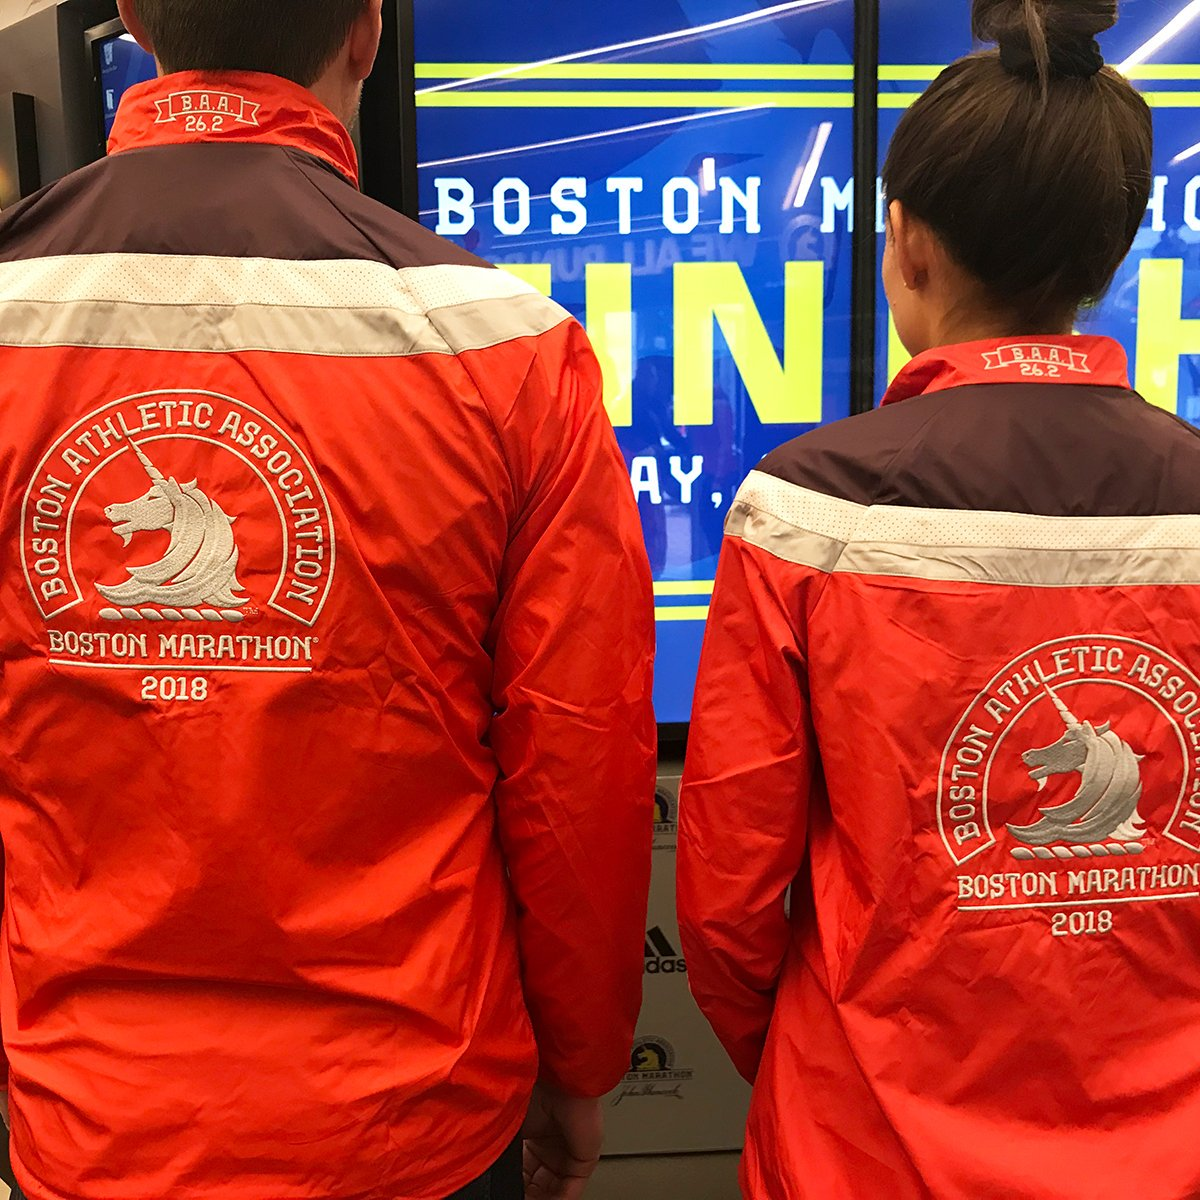 Here are the 2018 Boston Marathon jackets